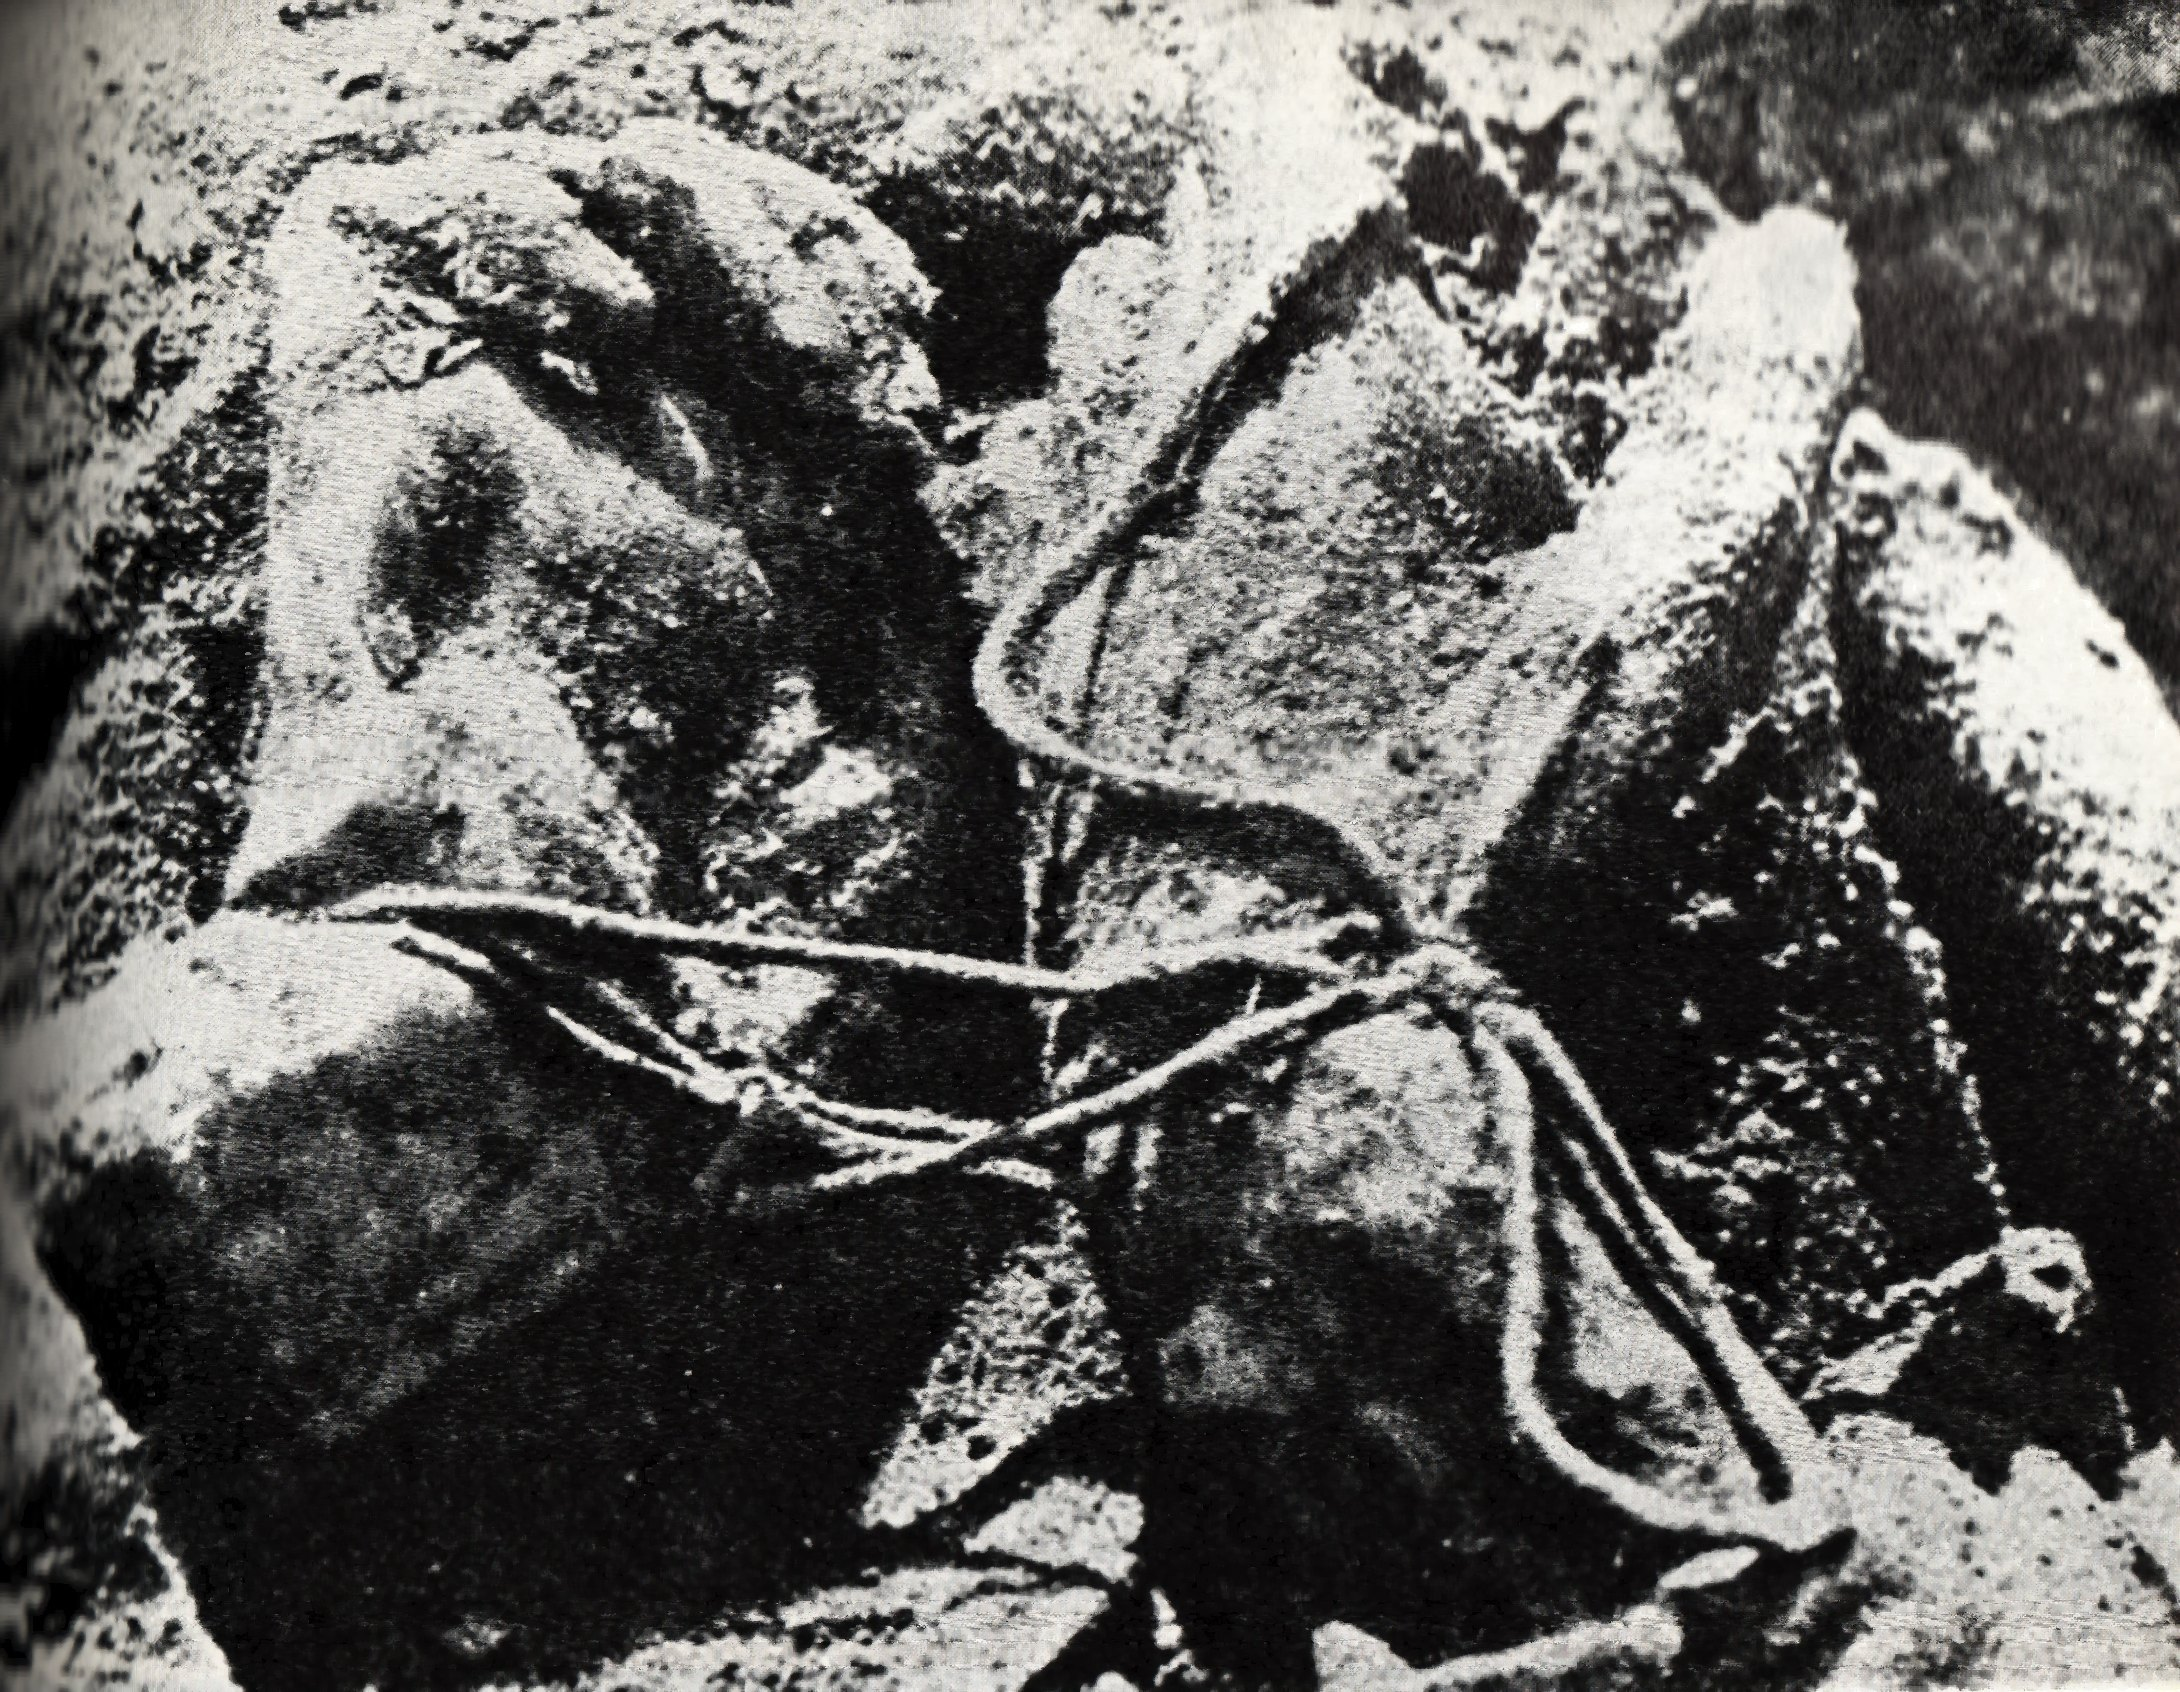 http://upload.wikimedia.org/wikipedia/commons/8/8c/Katyn_massacre.jpg